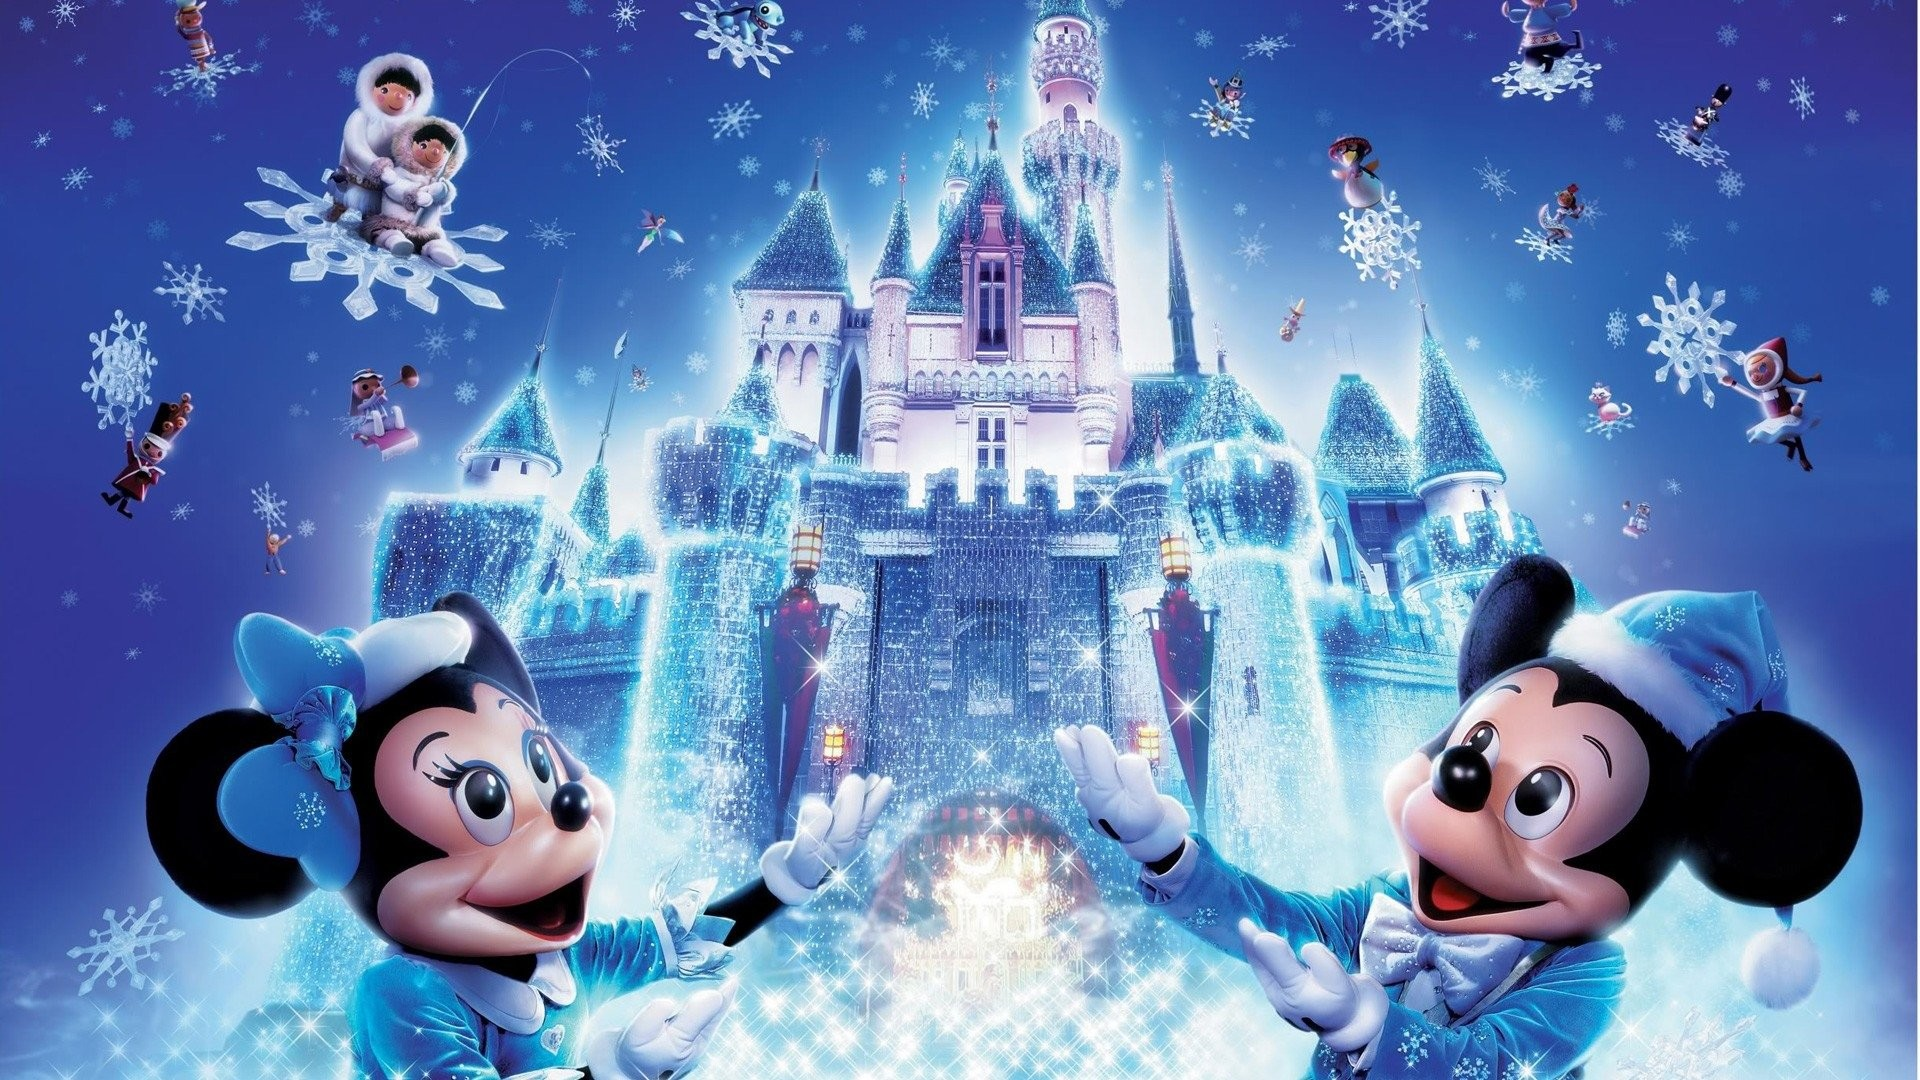 Res: 1920x1080, HD Wallpaper | Background Image ID:327971.  Movie Disney